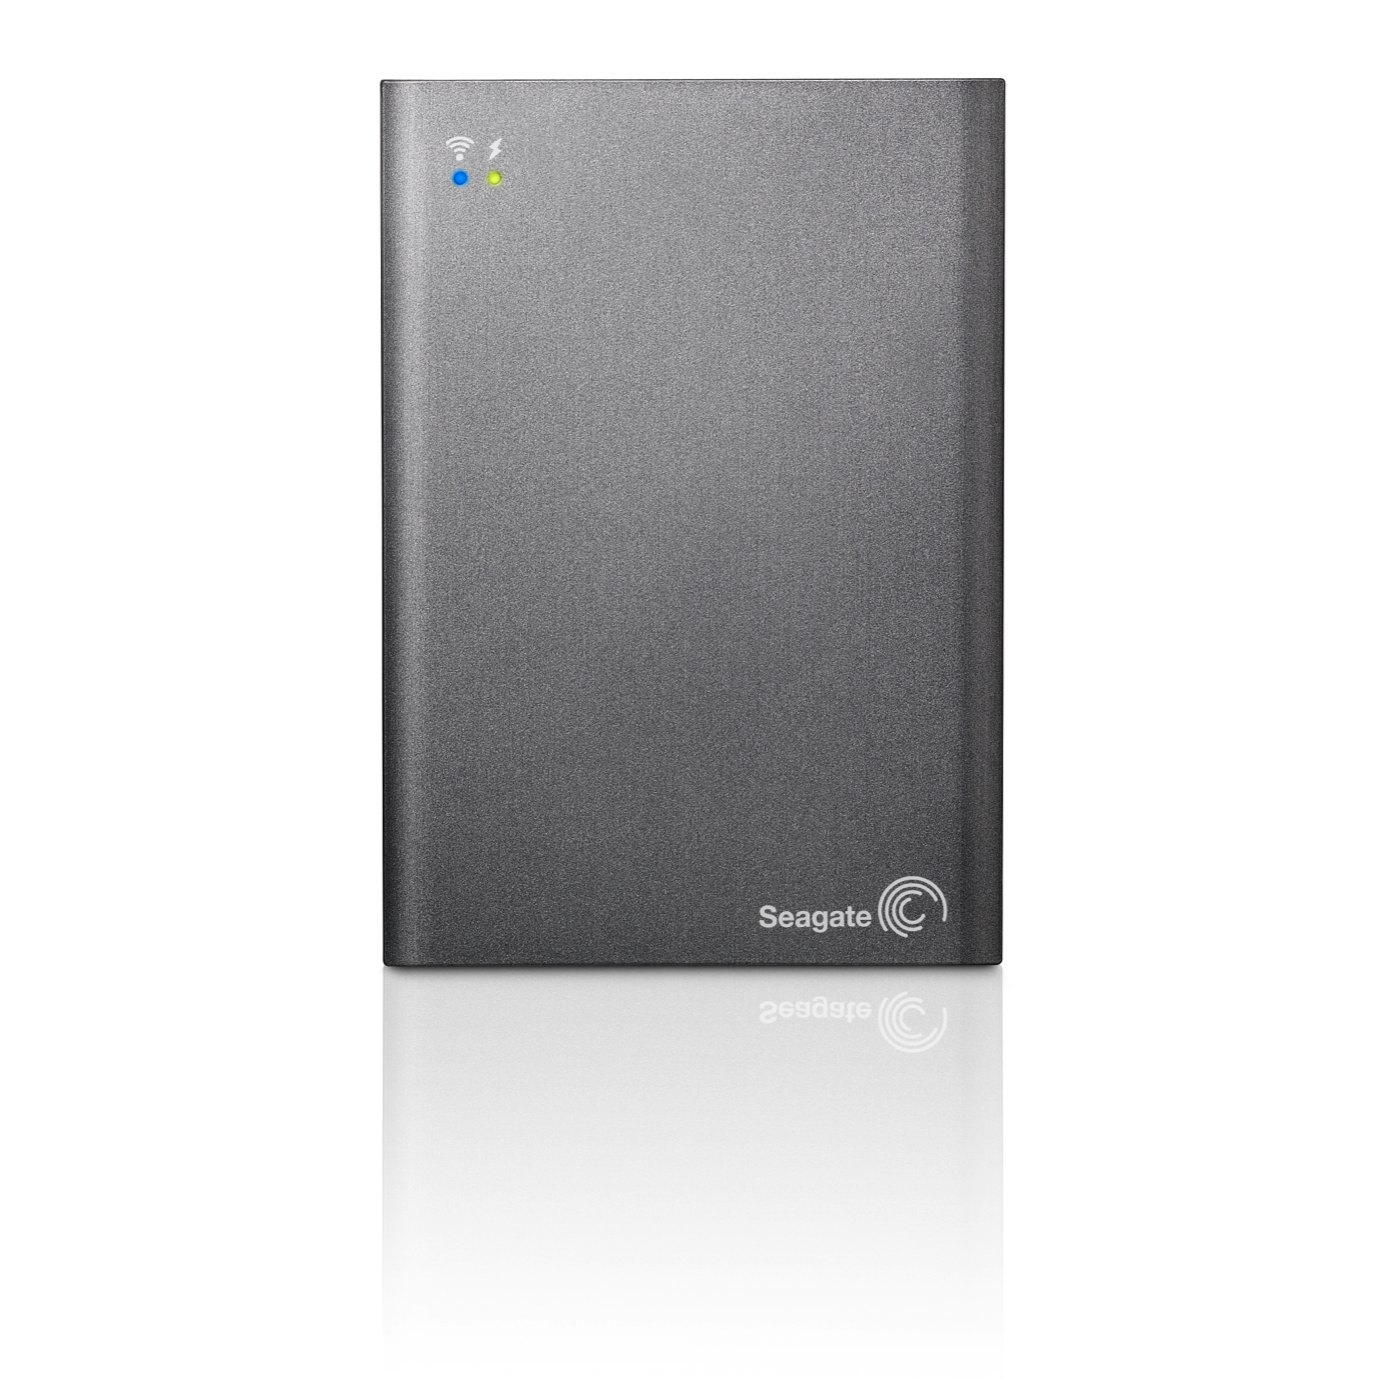 Foto de Seagate Wireless Plus (1/4)